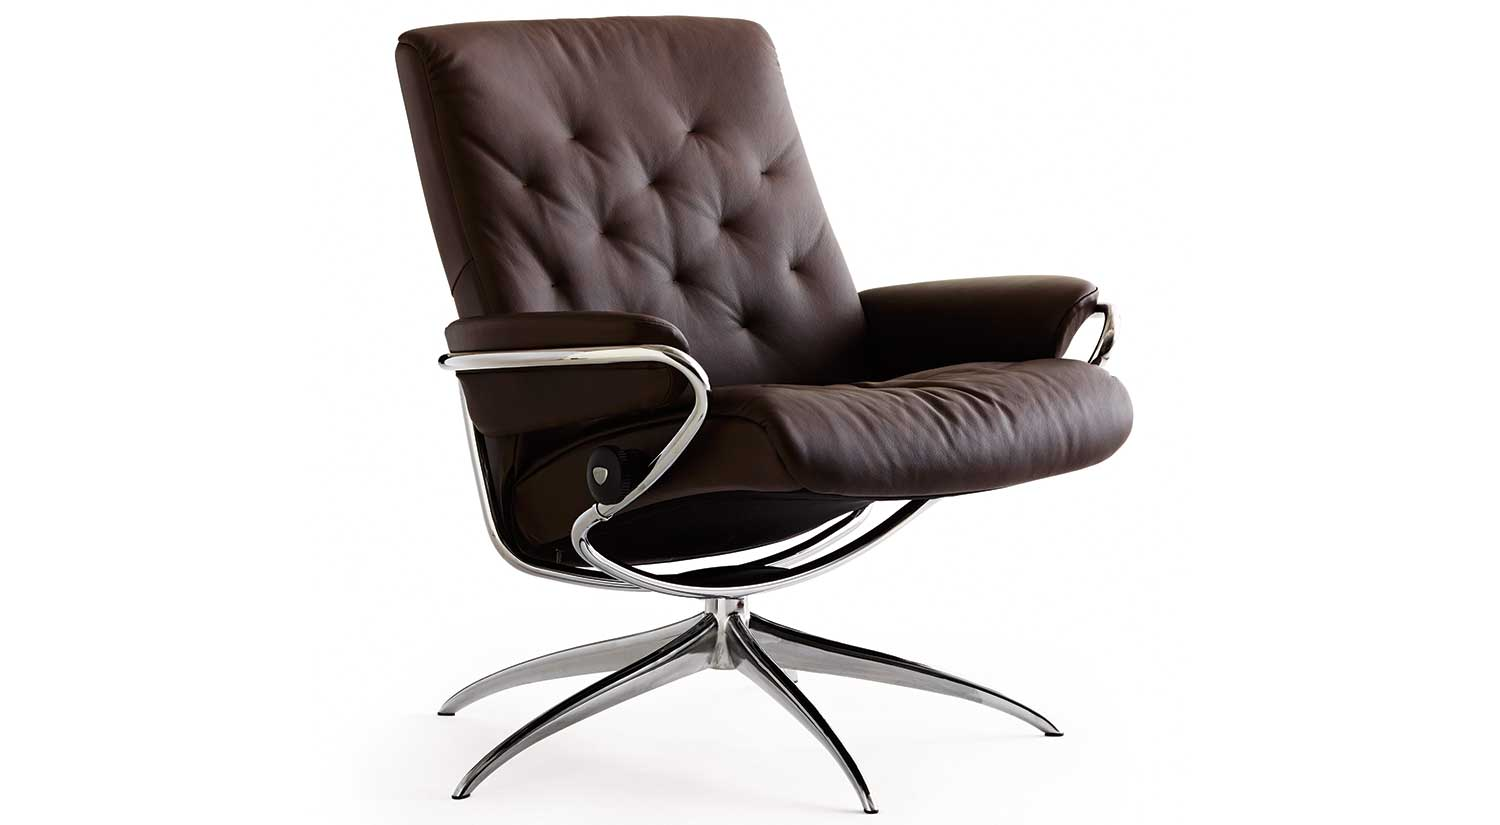 Metro Stressless Low Back Chair